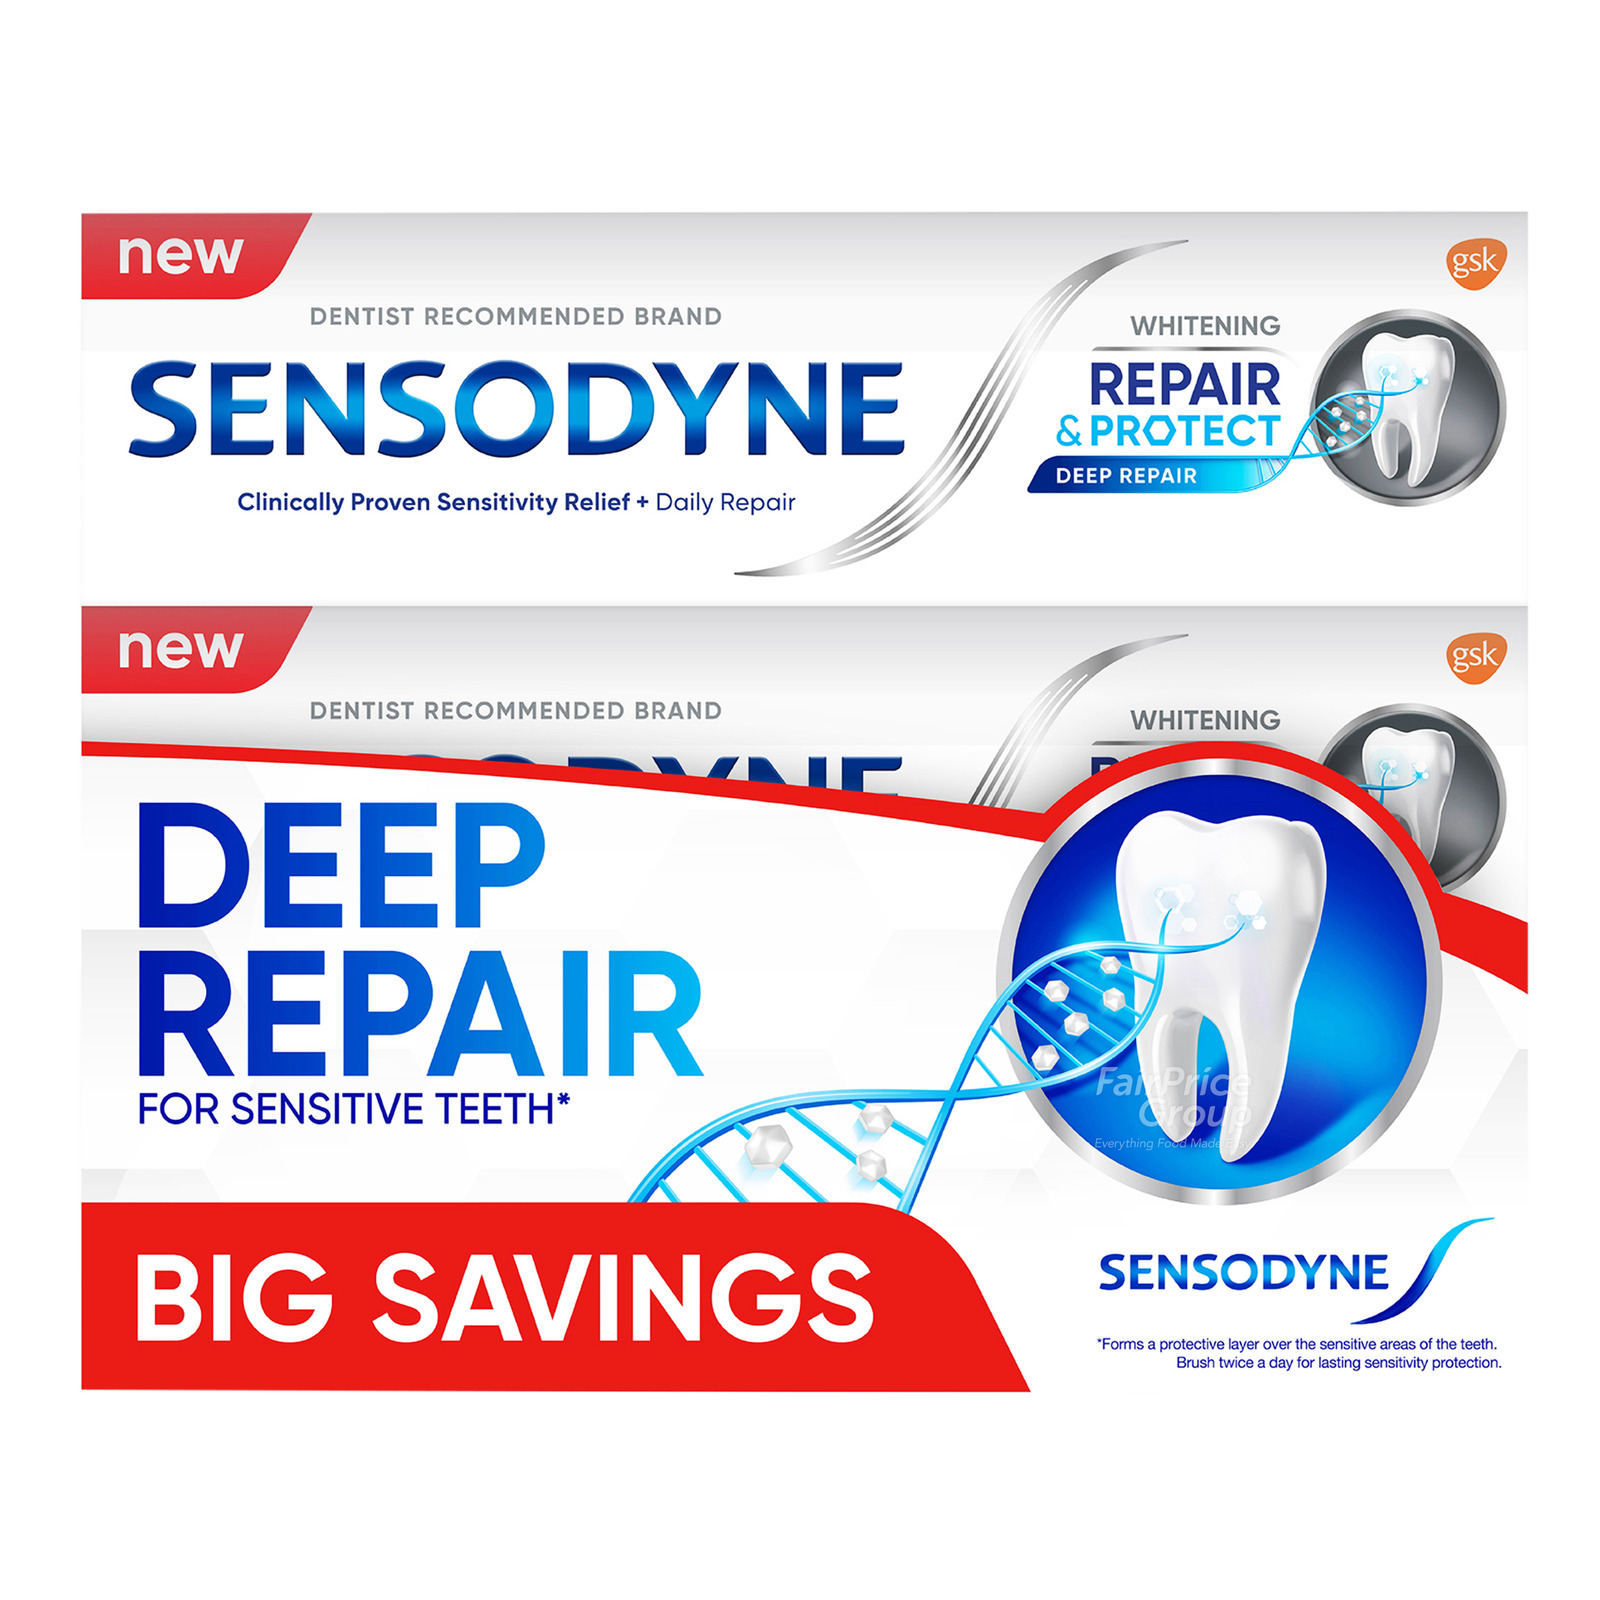 Sensodyne Toothpaste - Repair & Protect (Whitening)